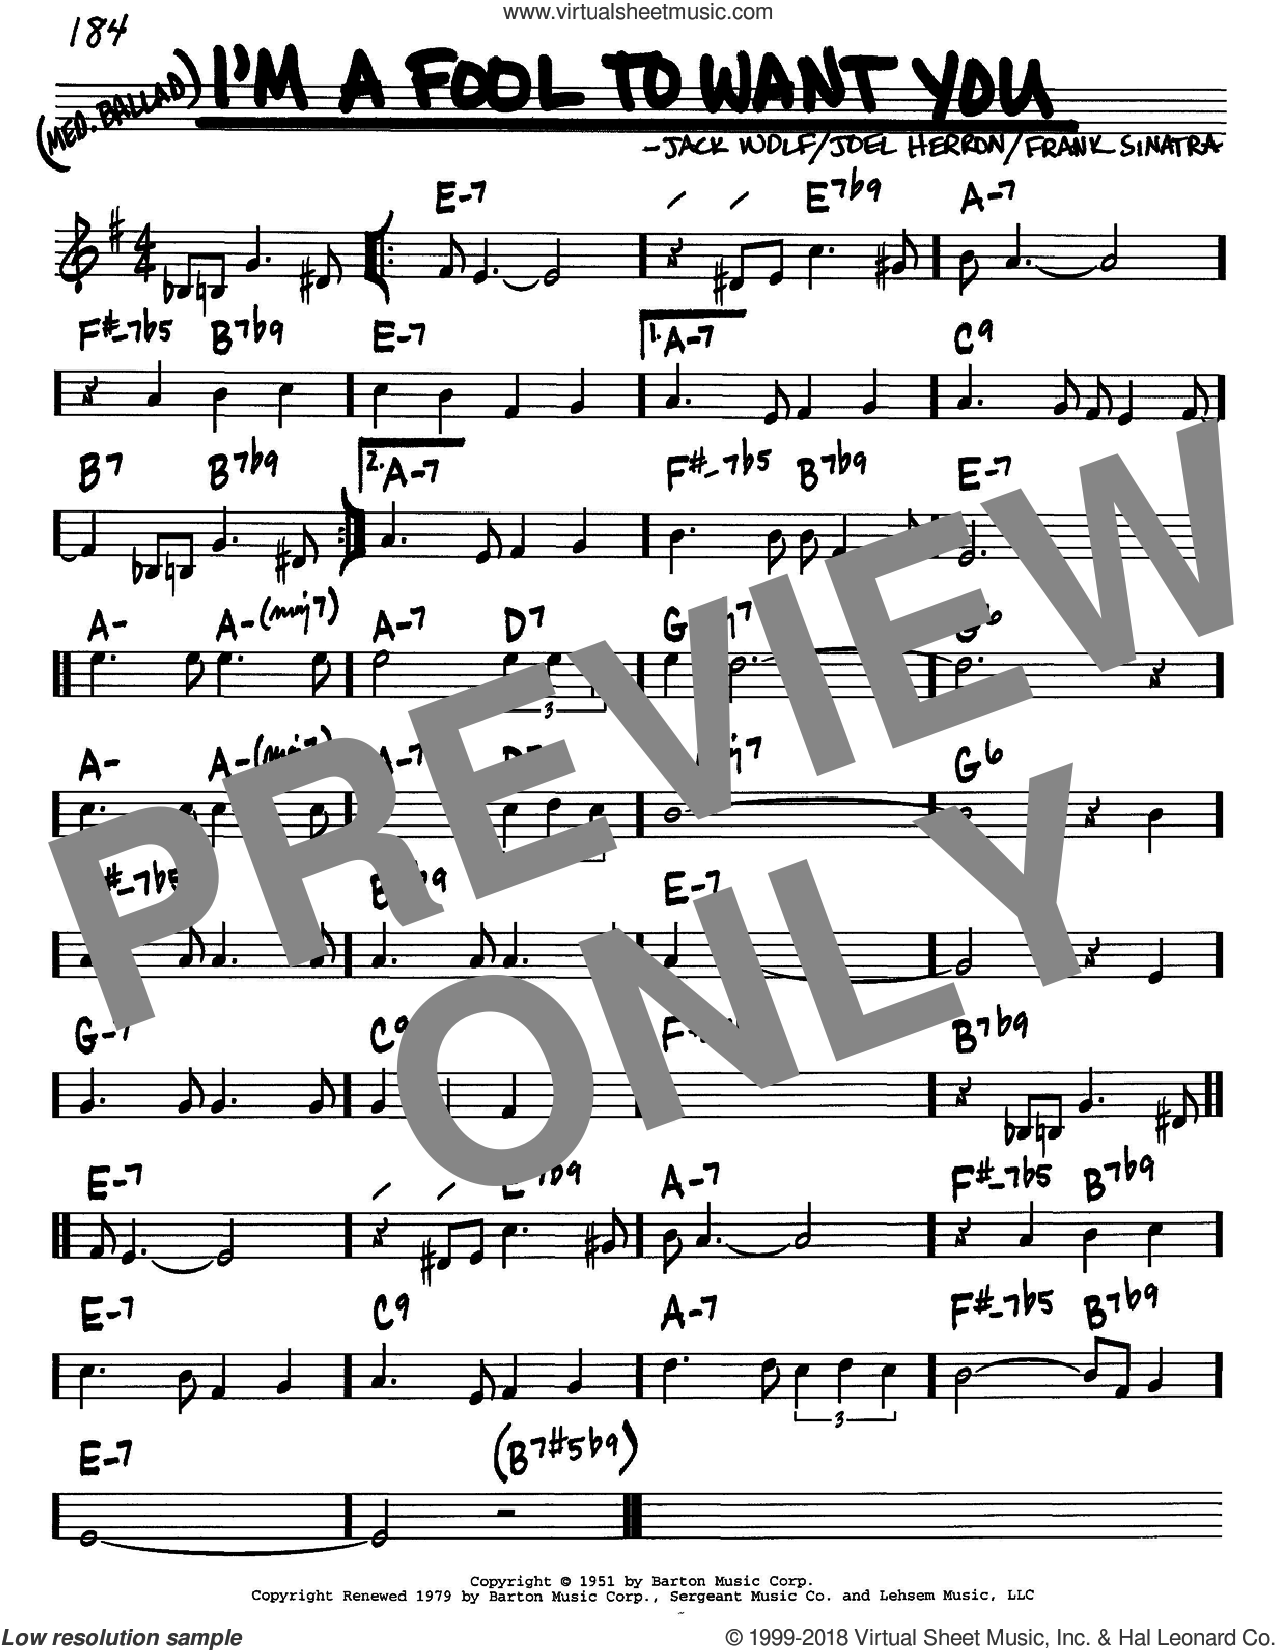 I'm A Fool To Want You sheet music for voice and other instruments (in C) by Frank Sinatra, Jack Wolf and Joel Herron, intermediate skill level